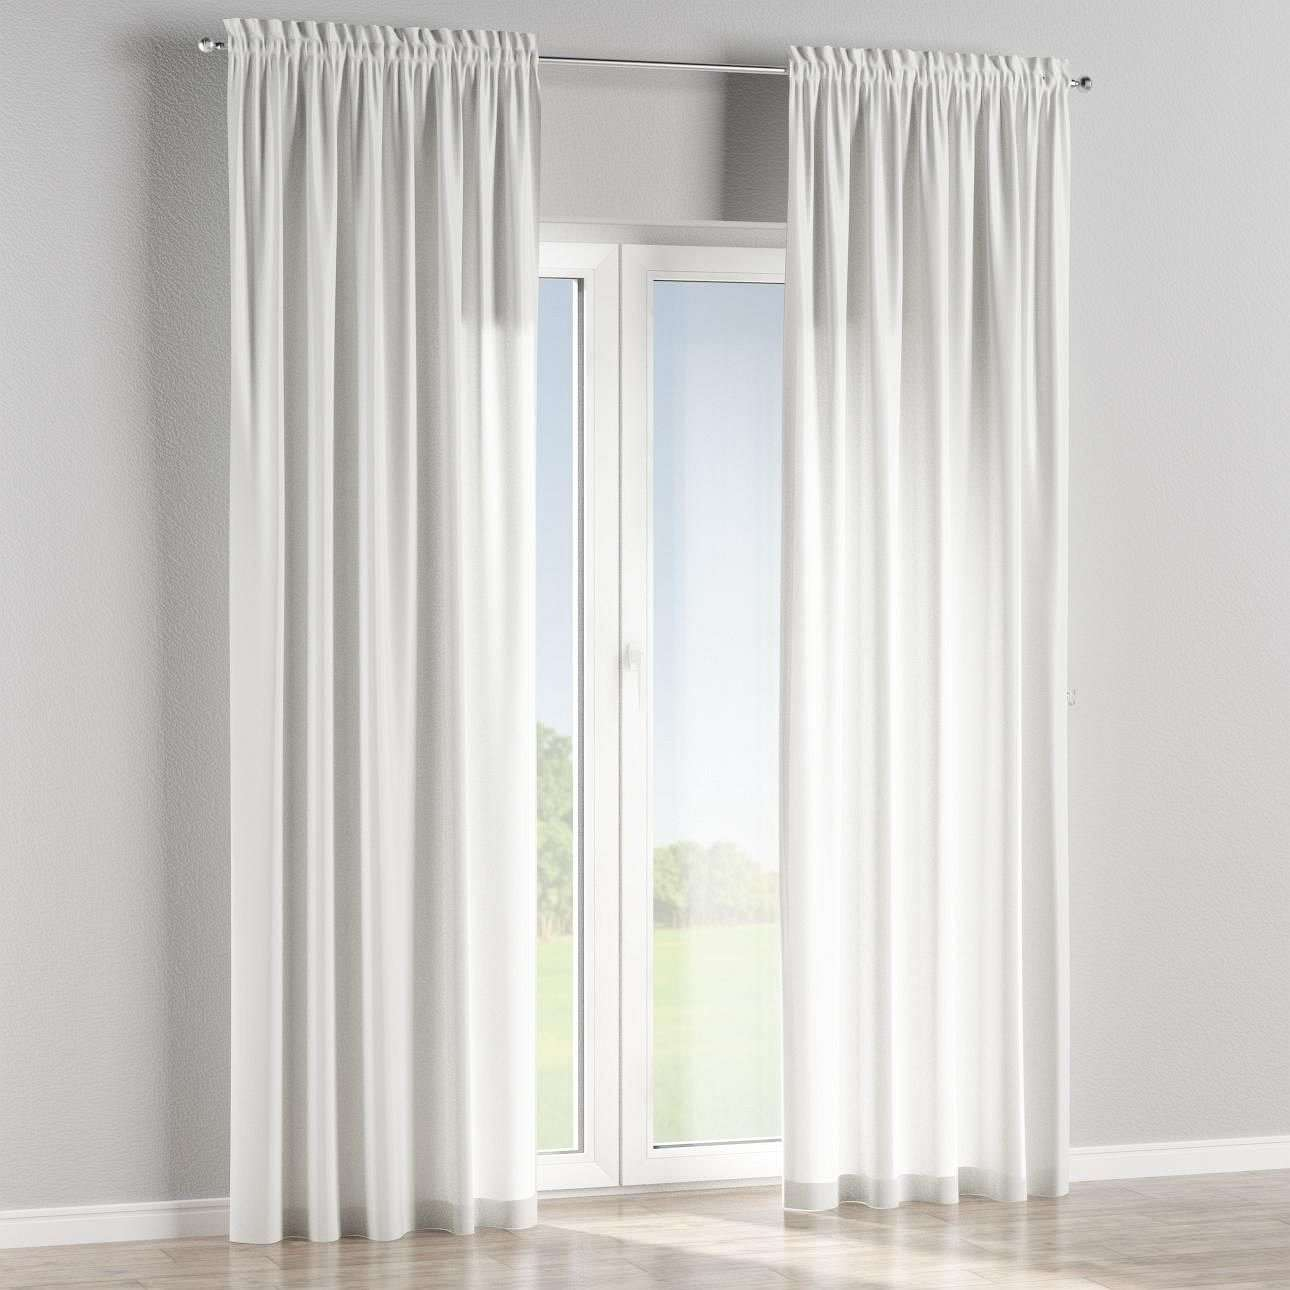 Slot and frill curtains in collection Bristol, fabric: 125-32